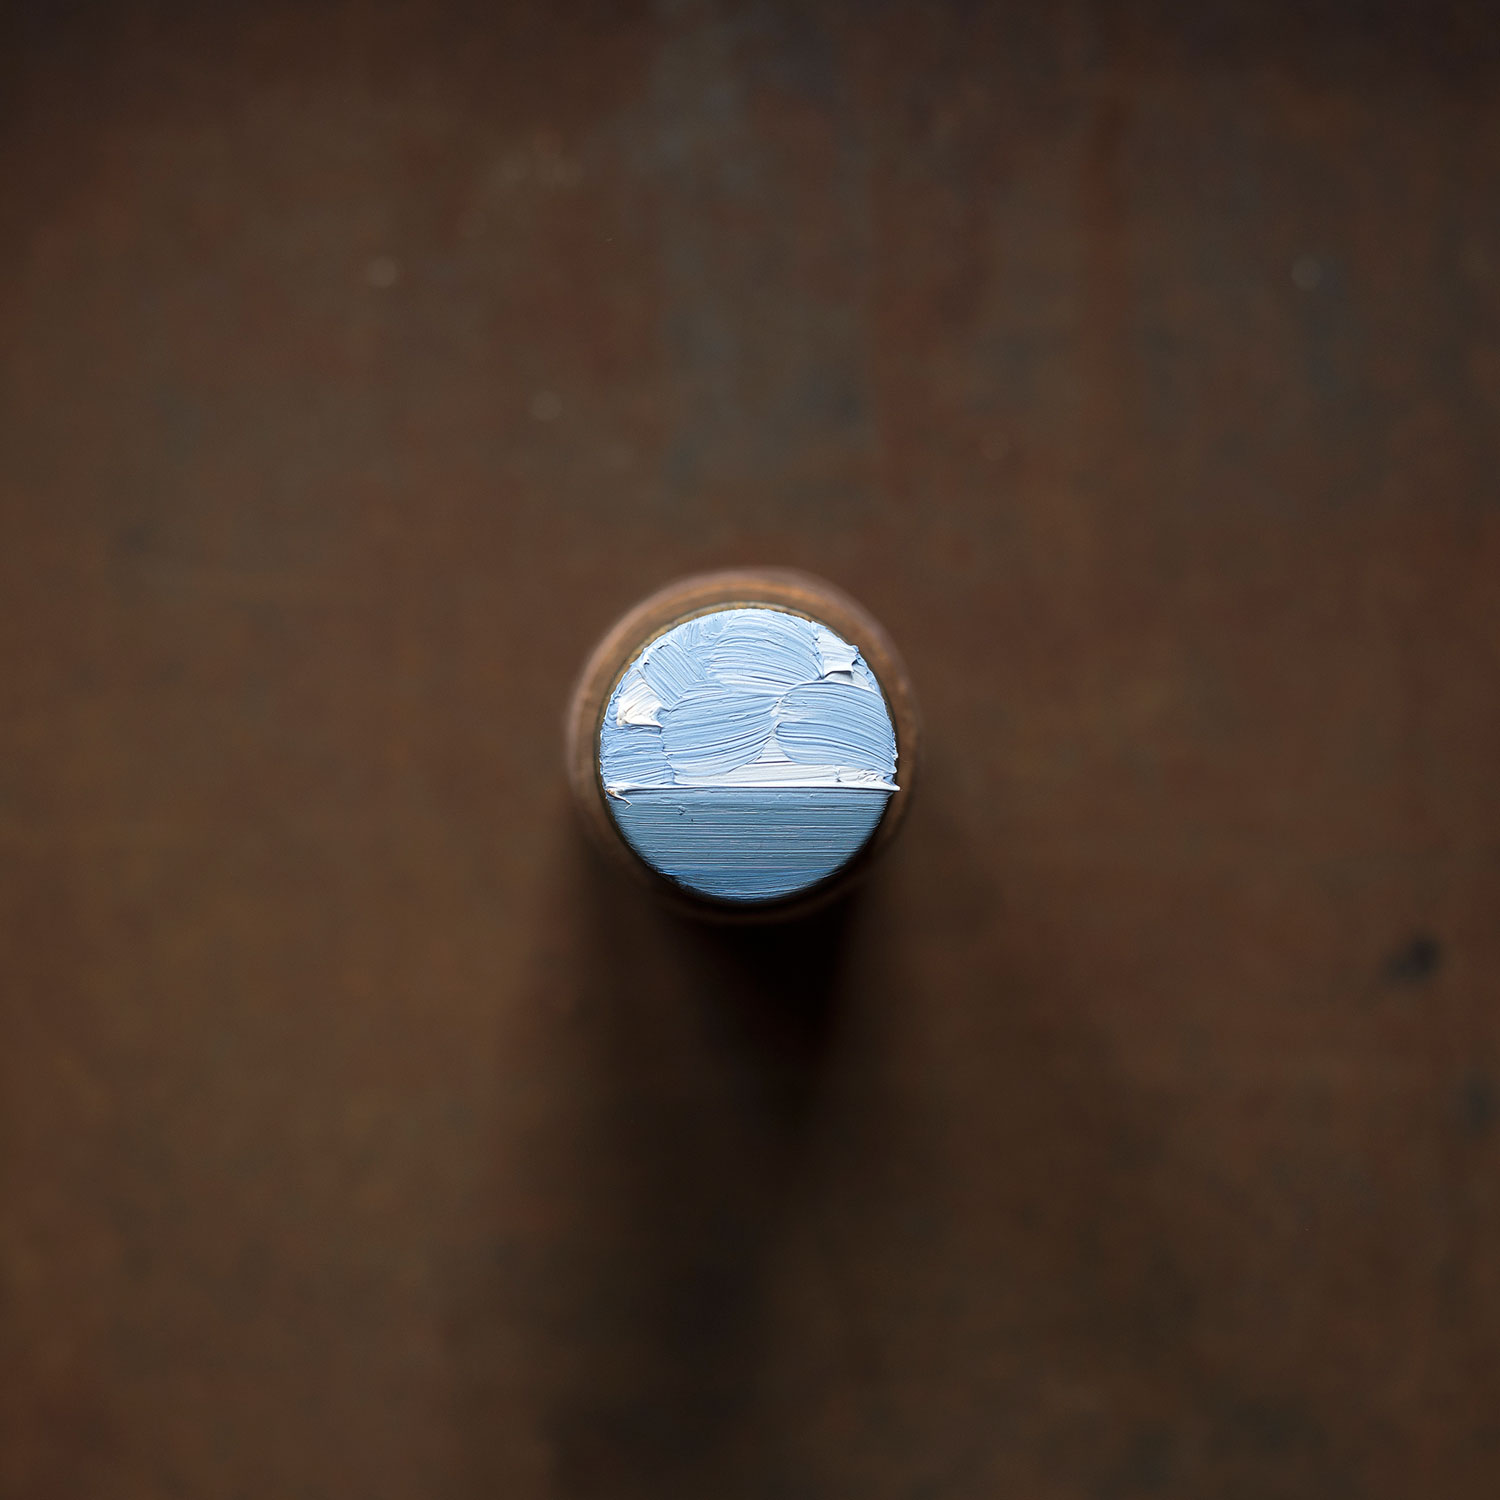 David Cass ,  Arctic  (2017) oil on stacked cylindrical pill tin and thread spool, H:10cm W:4cm